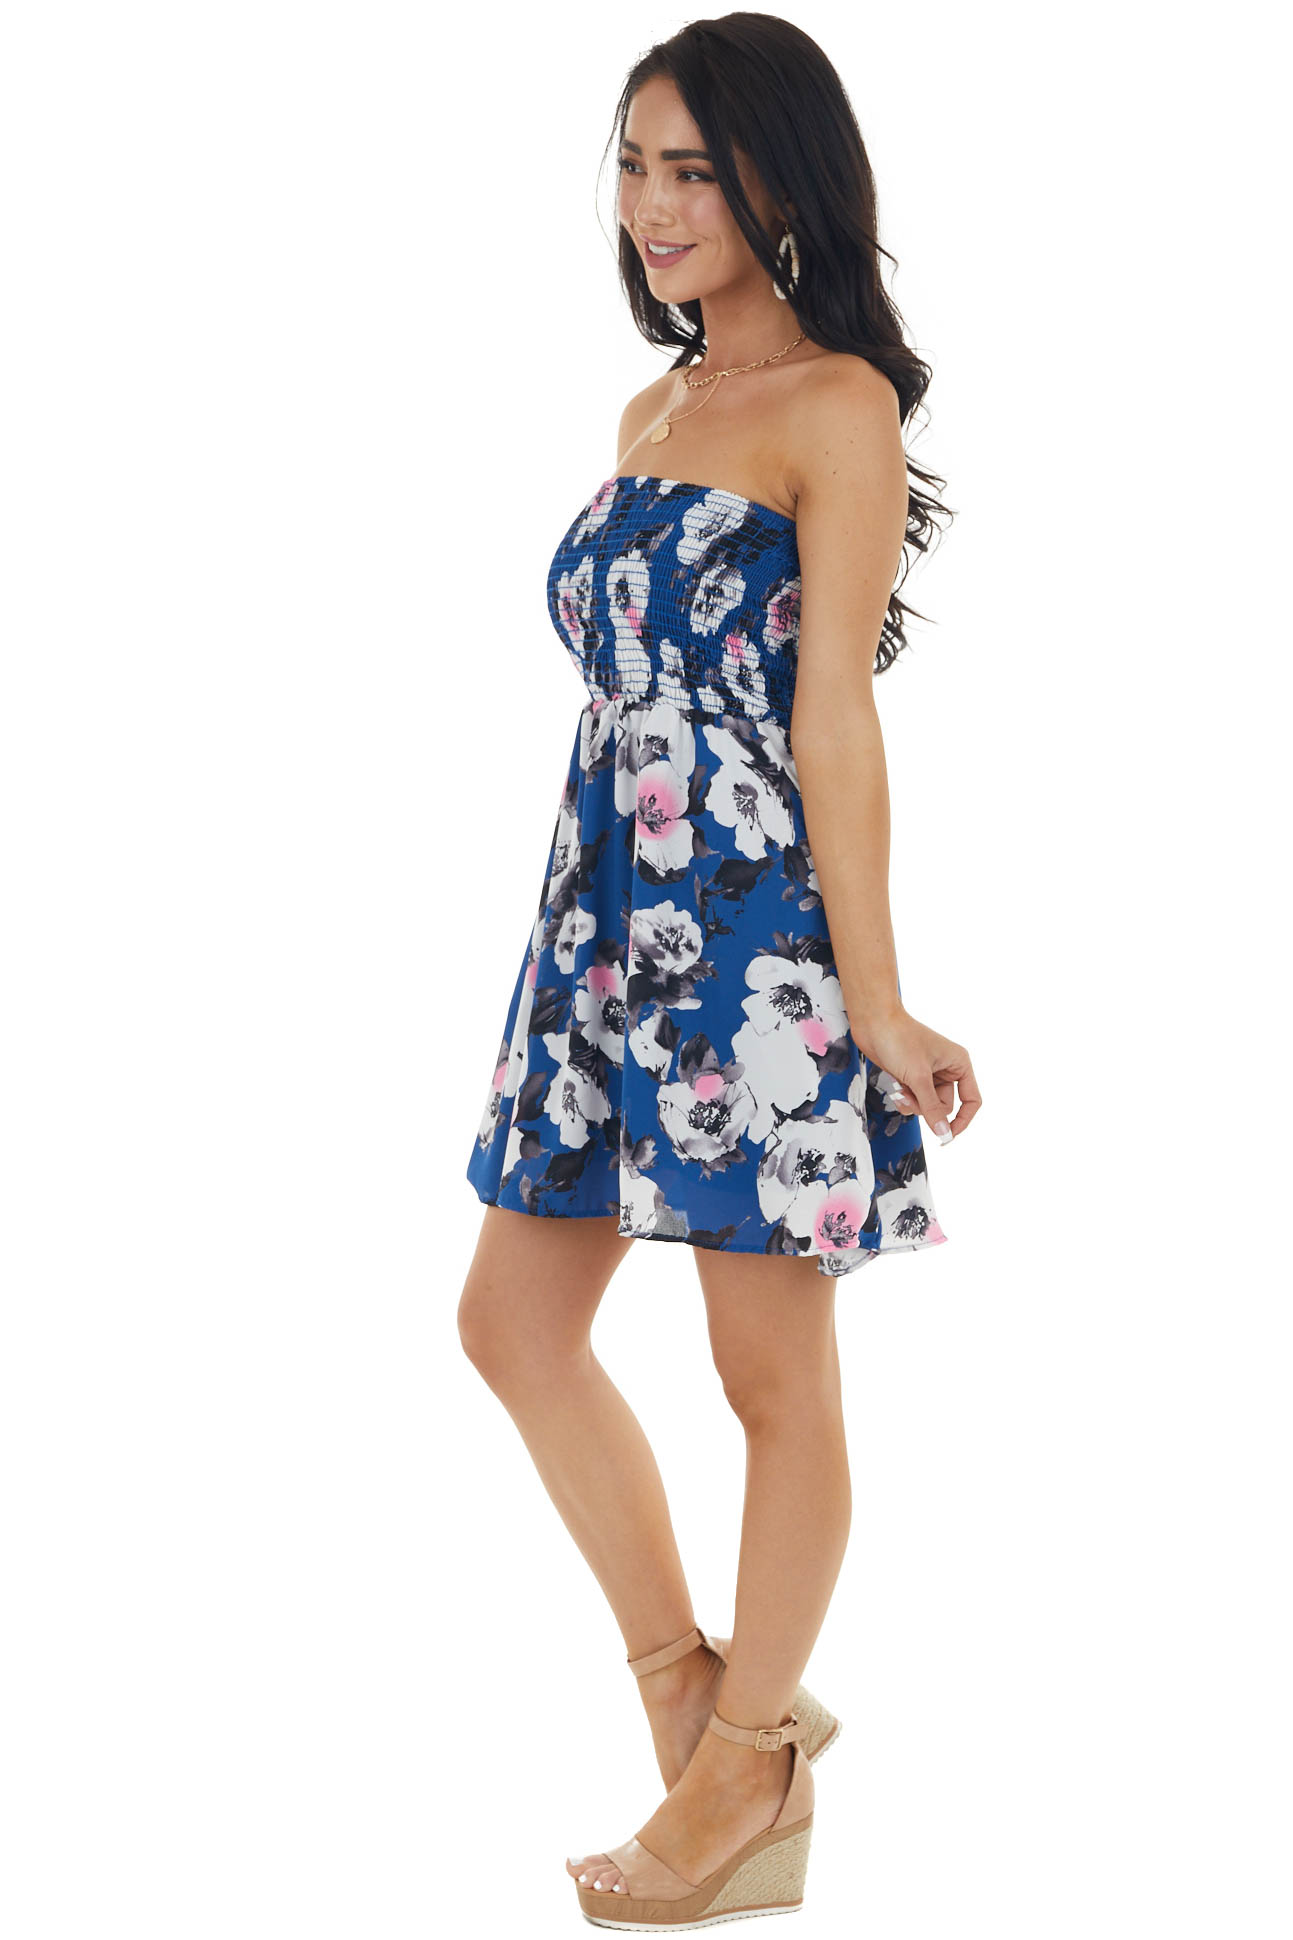 Catalina Blue Floral Print Strapless Smocked Bust Mini Dress